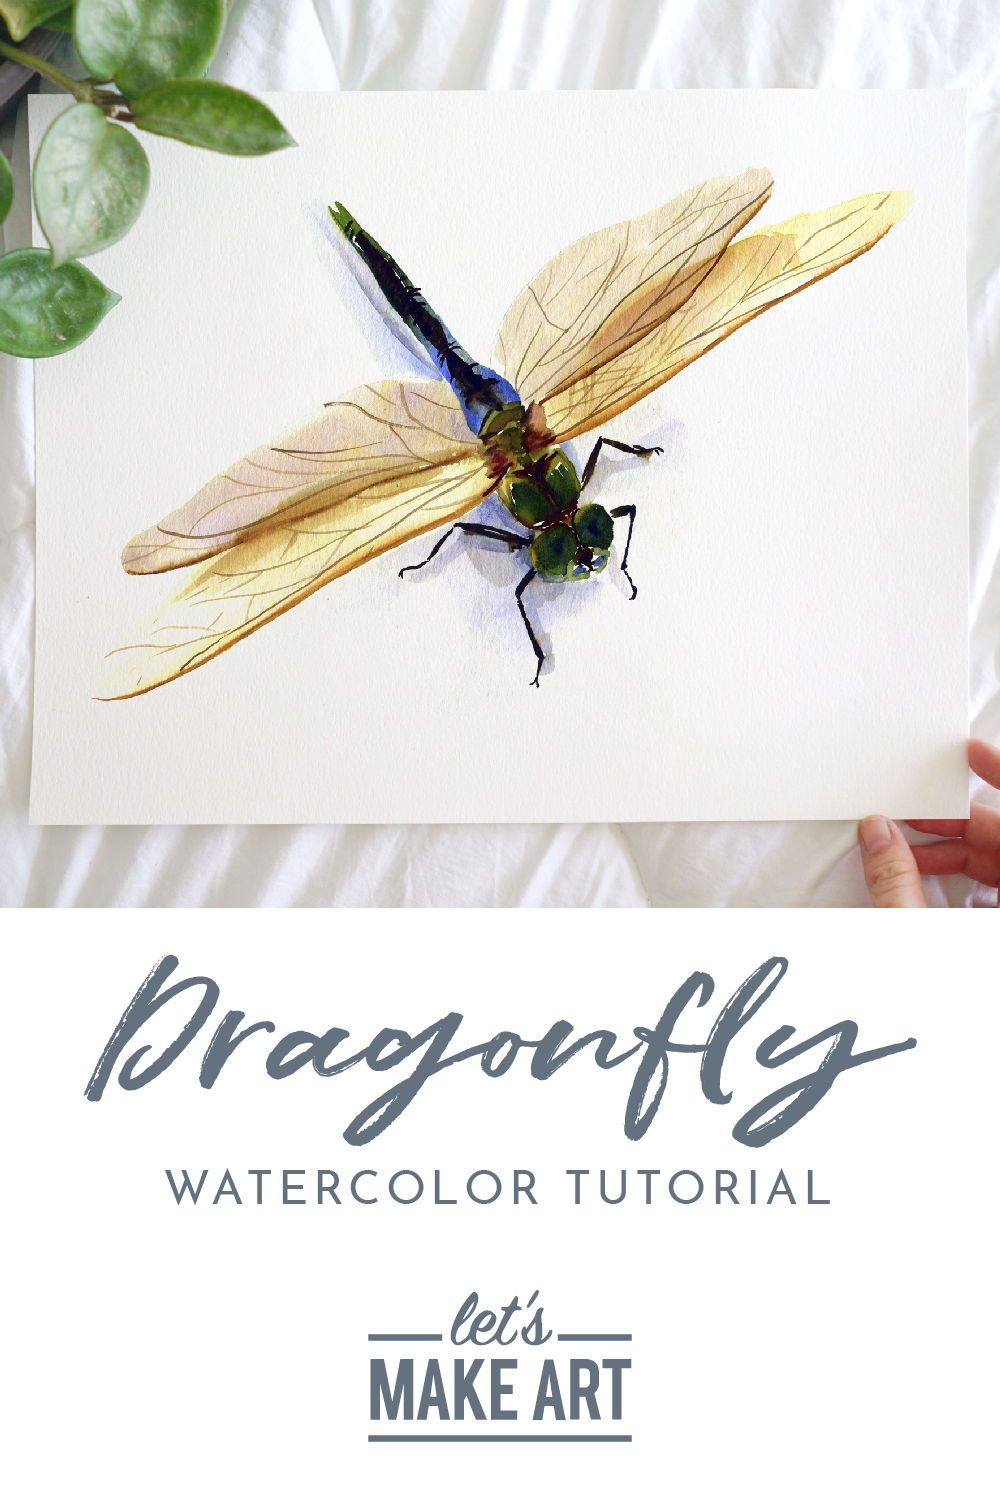 Dragonfly Watercolor Kit In 2020 Let S Make Art Watercolor Kit